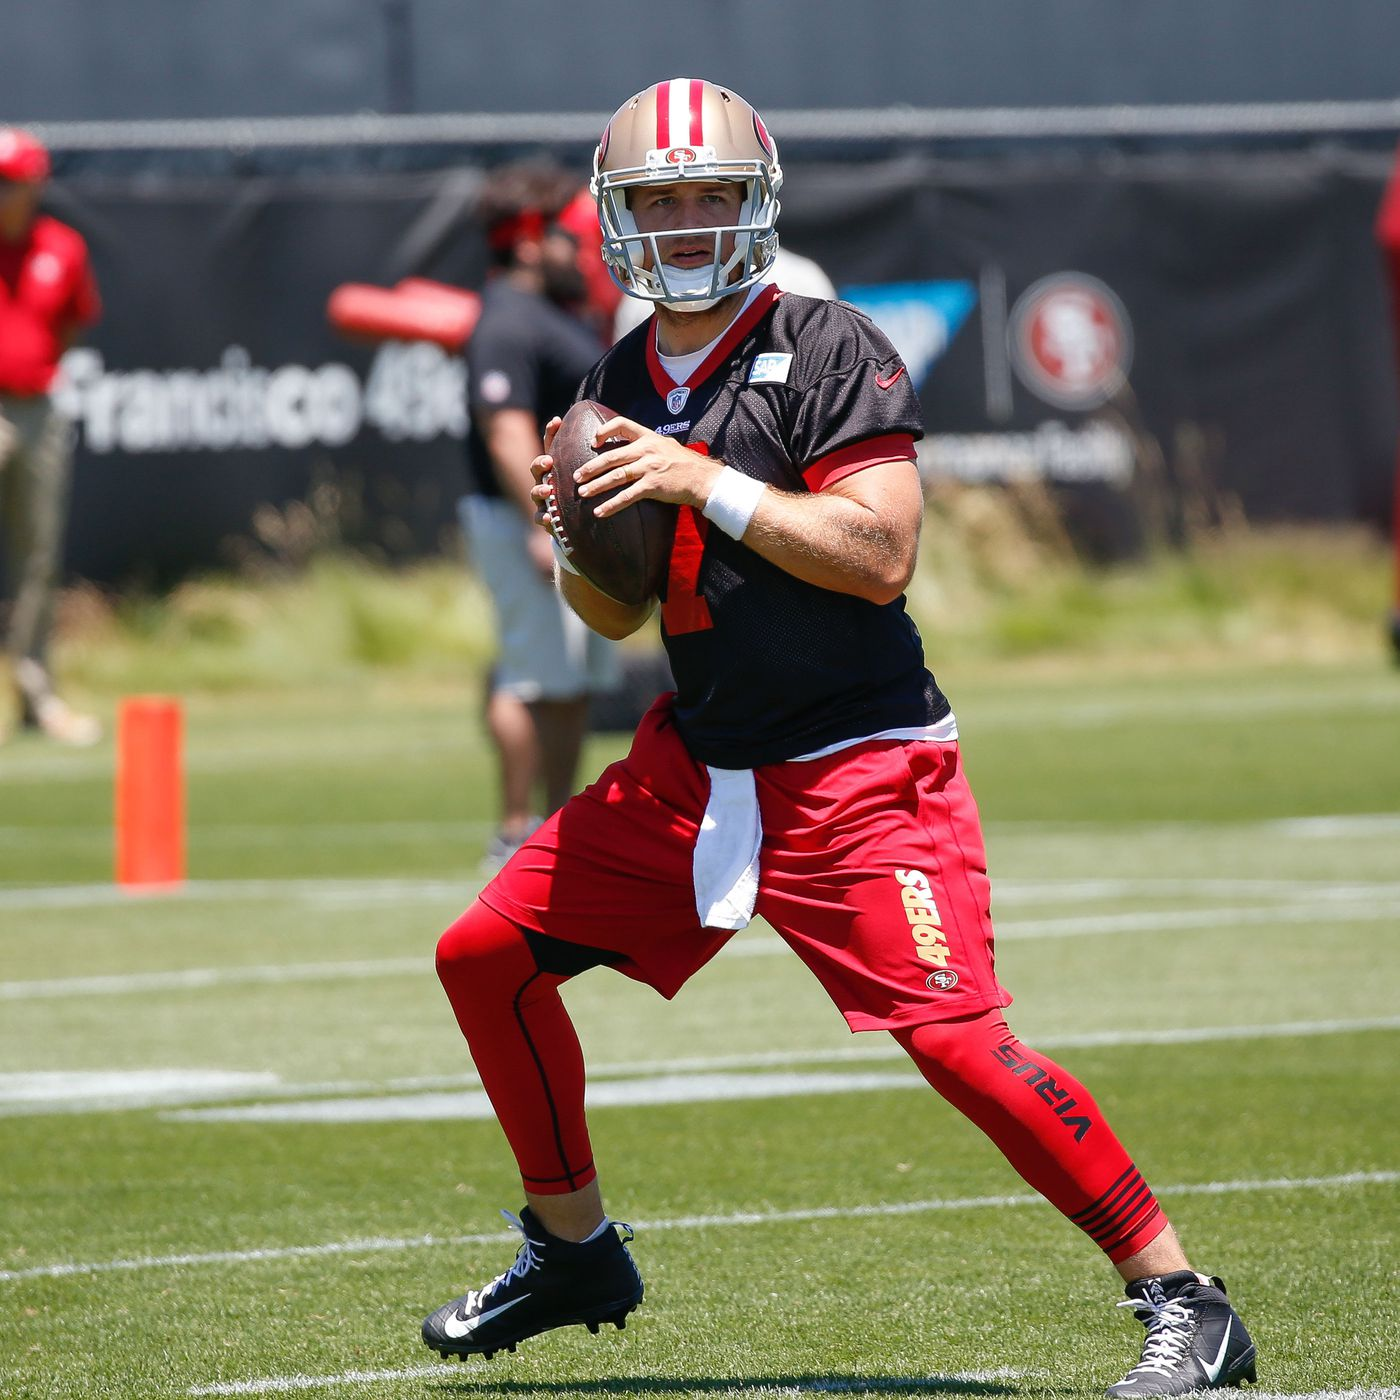 finest selection 7b11a 42c23 49ers roster breakdowns, 90-in-90: Nick Mullens - Niners Nation